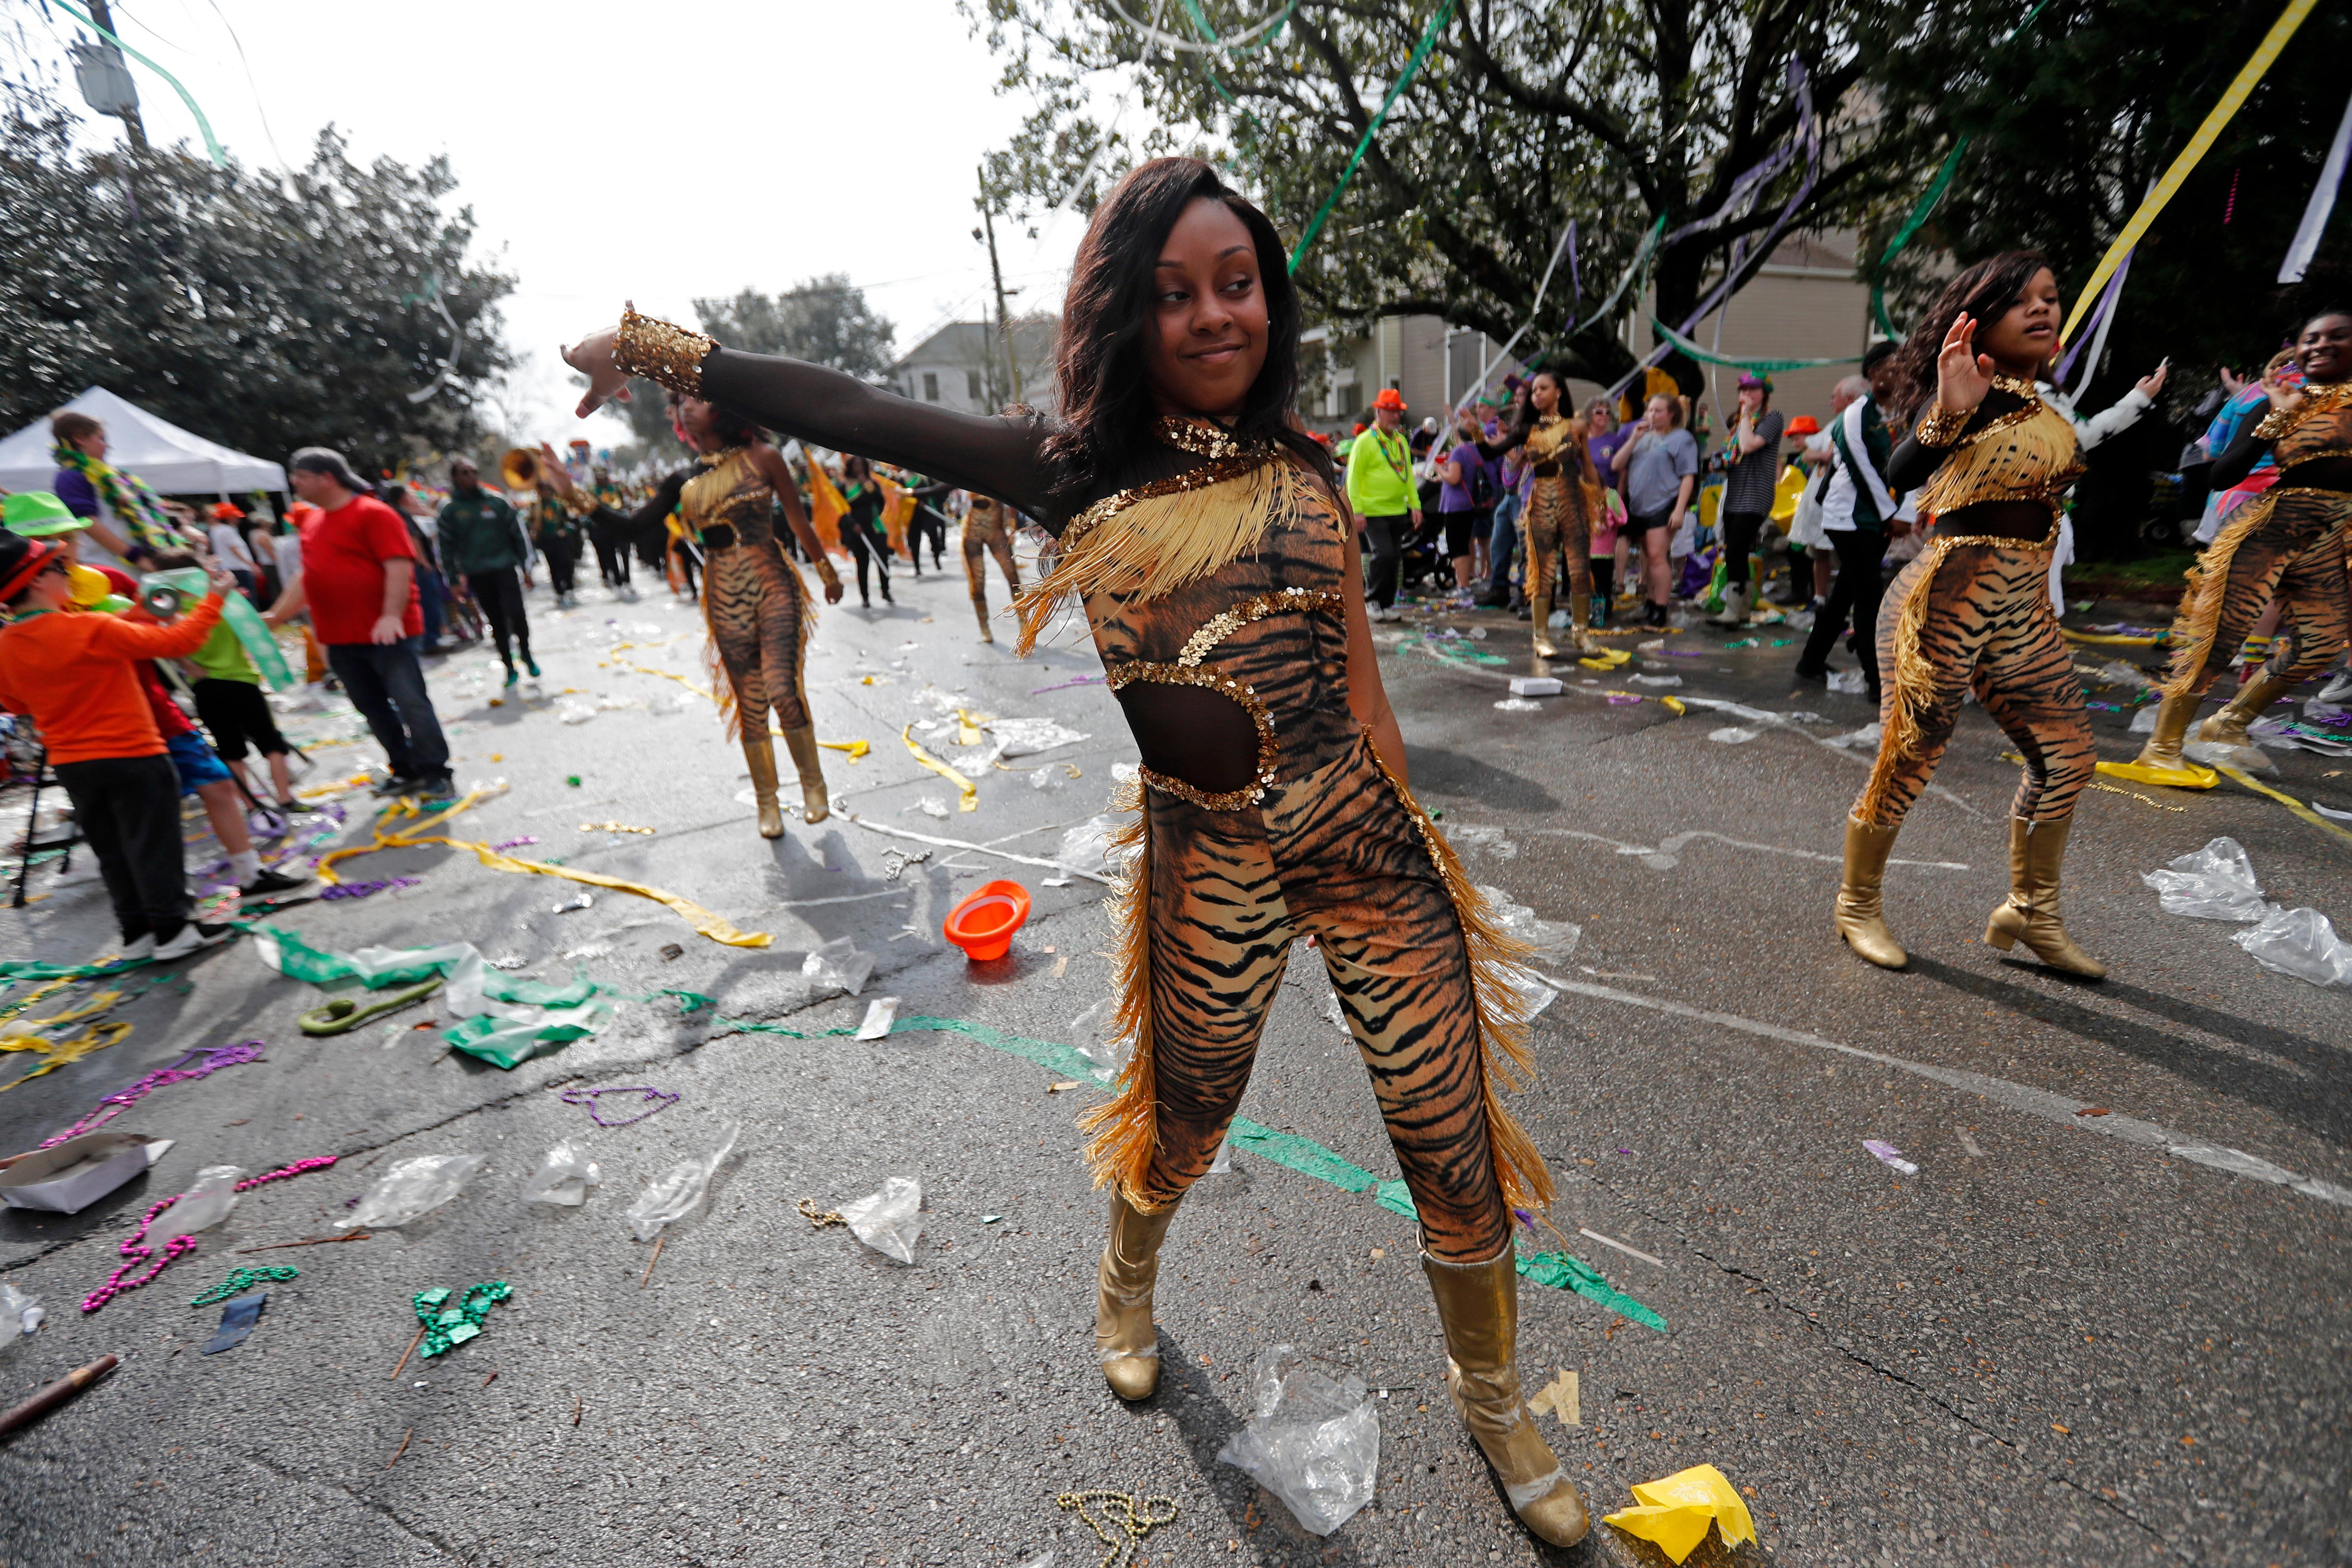 Dancers from Jim Hill High School of Jackson, Miss. march during the Krewe of Thoth Mardi Gras parade in New Orleans, Sunday, Feb. 11, 2018. The krewe's original parade route was designed specifically to serve people who were unable to attend other parades in the city. The route passes in front of several extended healthcare facilities. Carnival season will culminate on Mardi Gras day this Tuesday, Feb. 13. (AP Photo/Gerald Herbert)